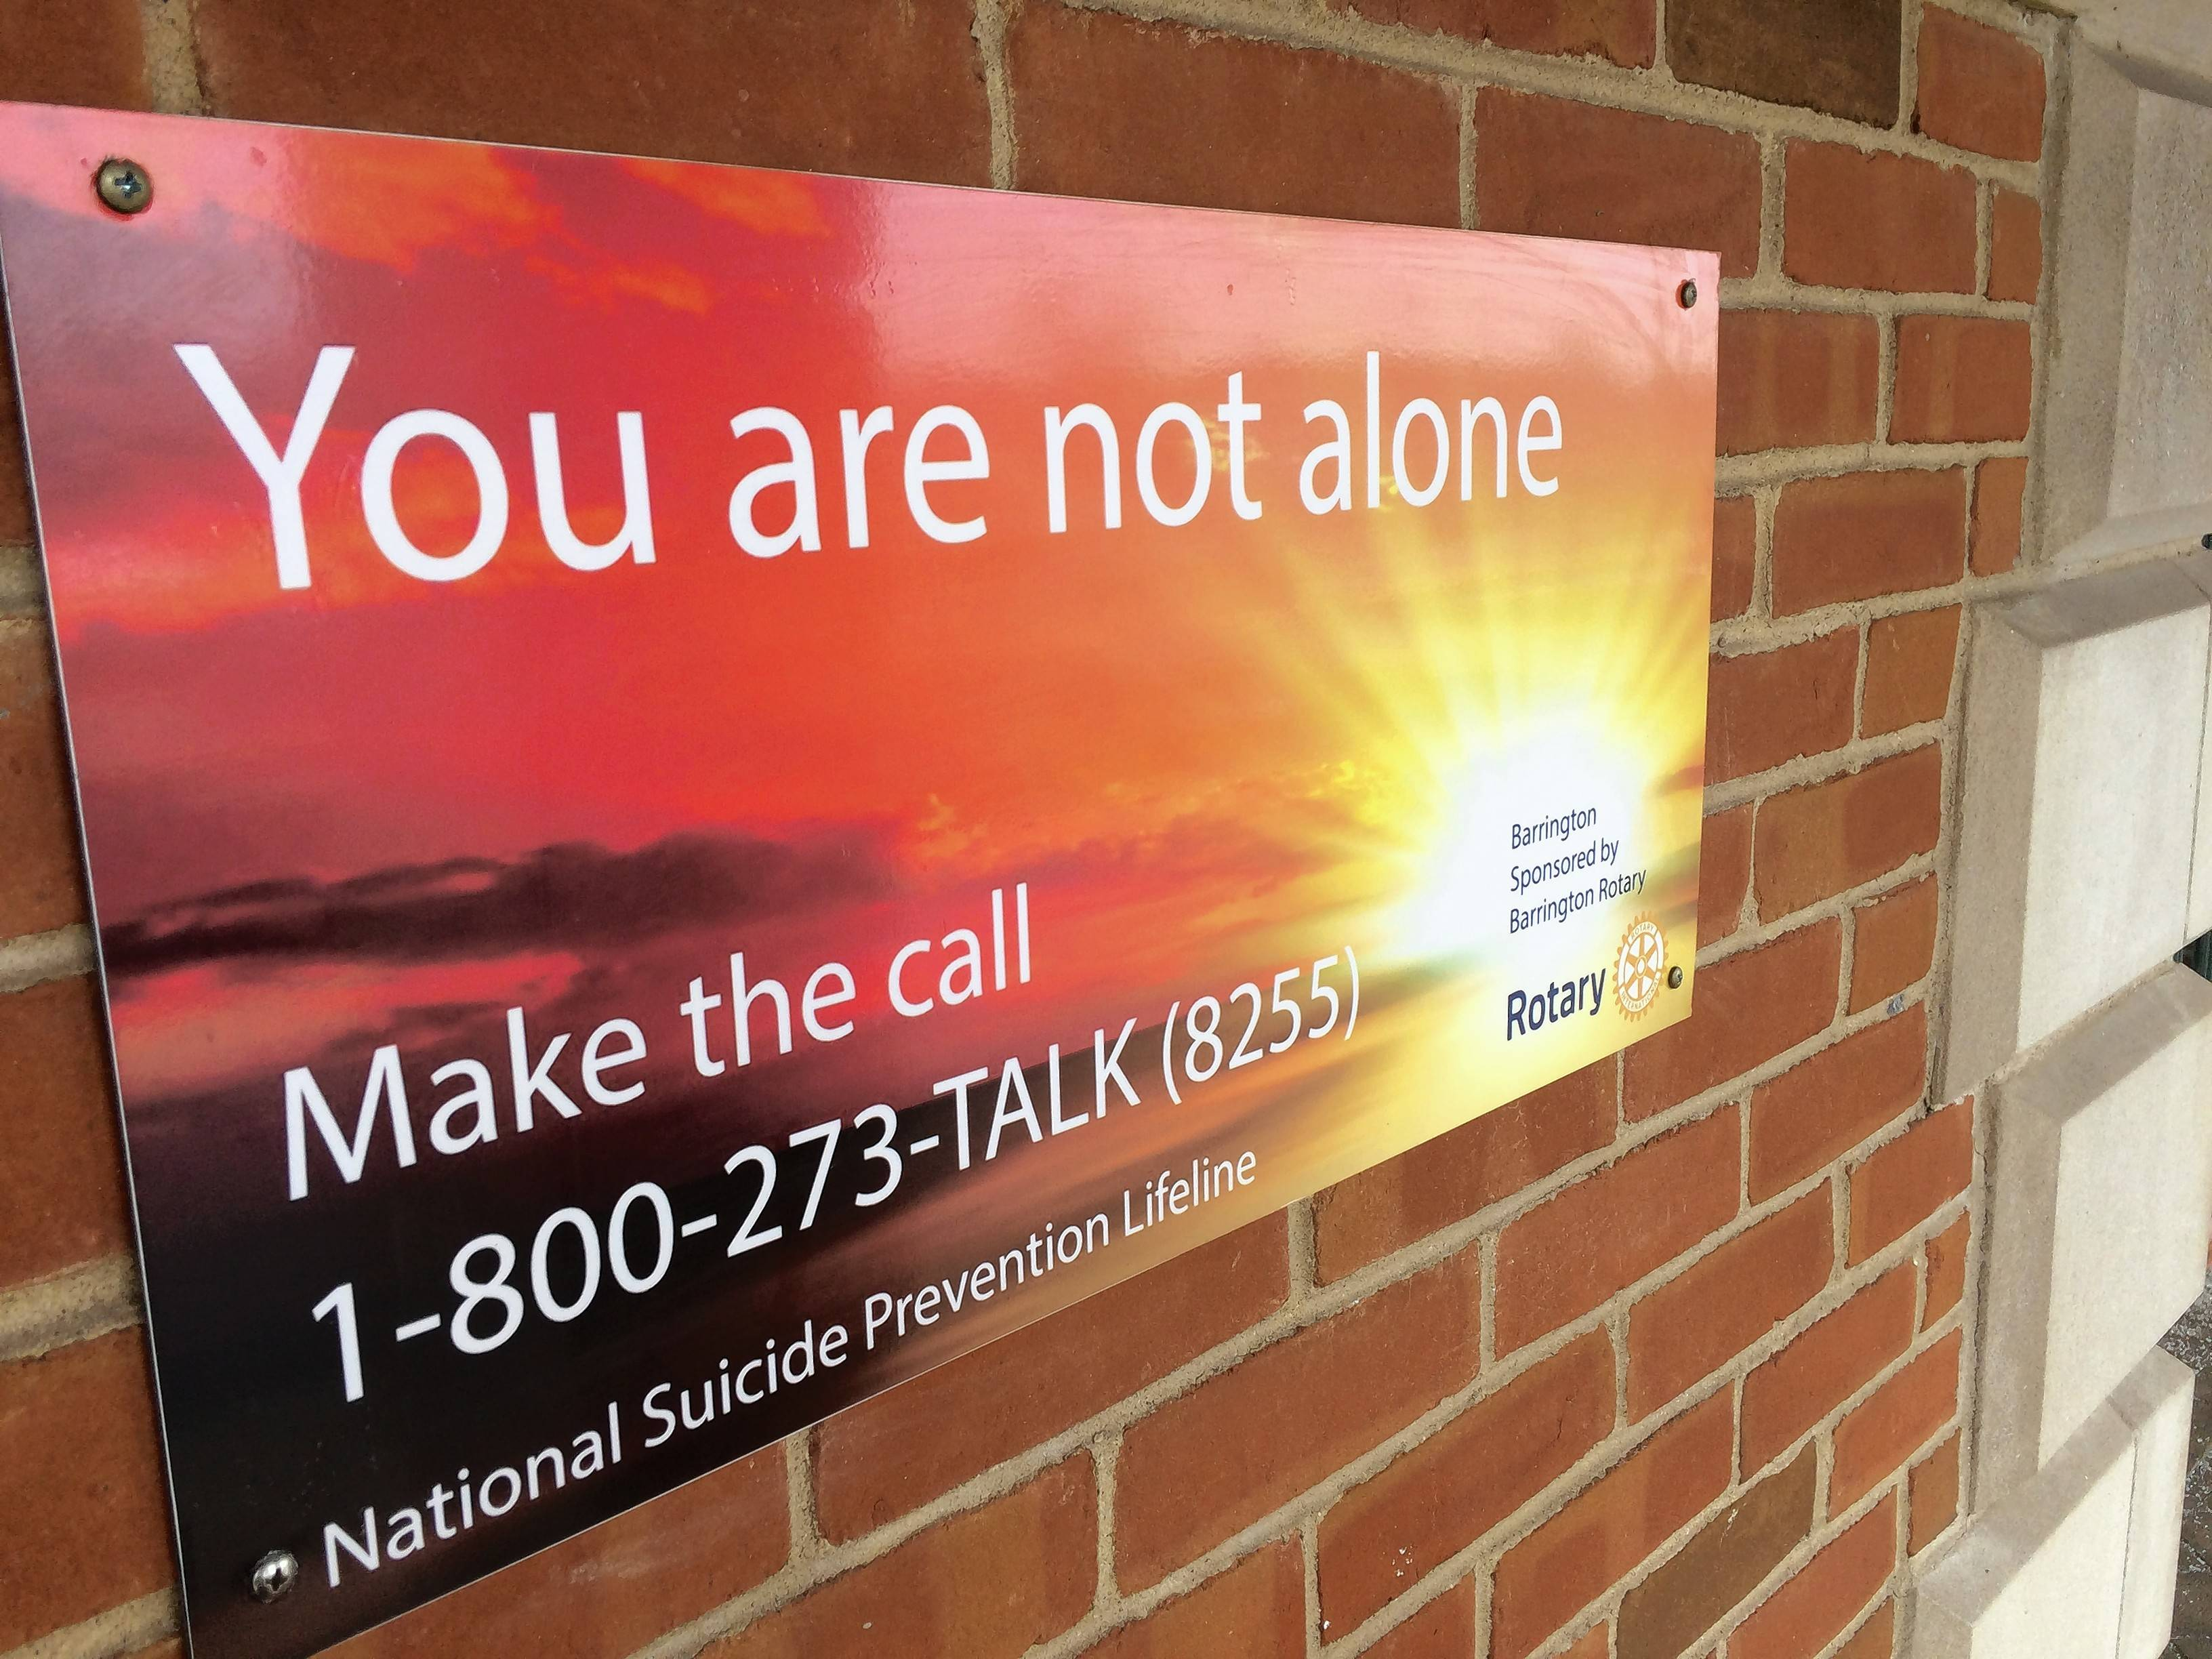 Rotary clubs lead effort to prevent suicides by train in Northwest suburbs